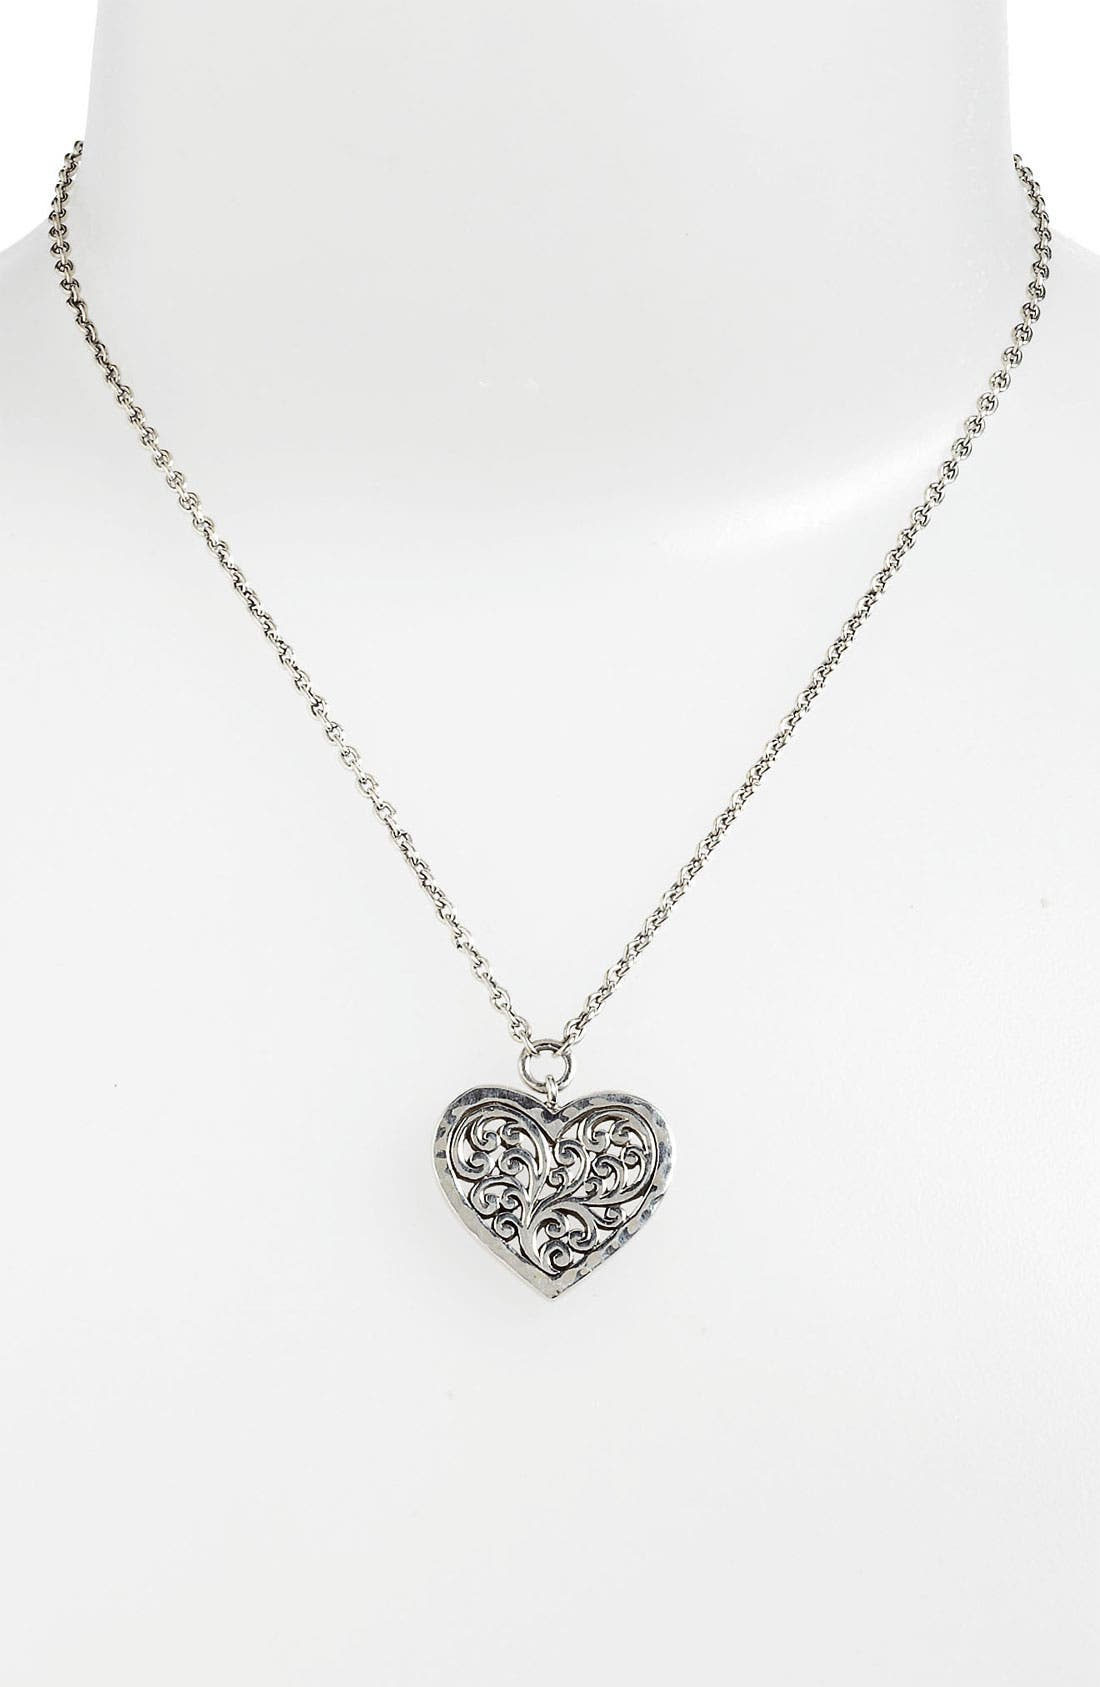 Alternate Image 1 Selected - Lois Hill Heart Pendant Necklace